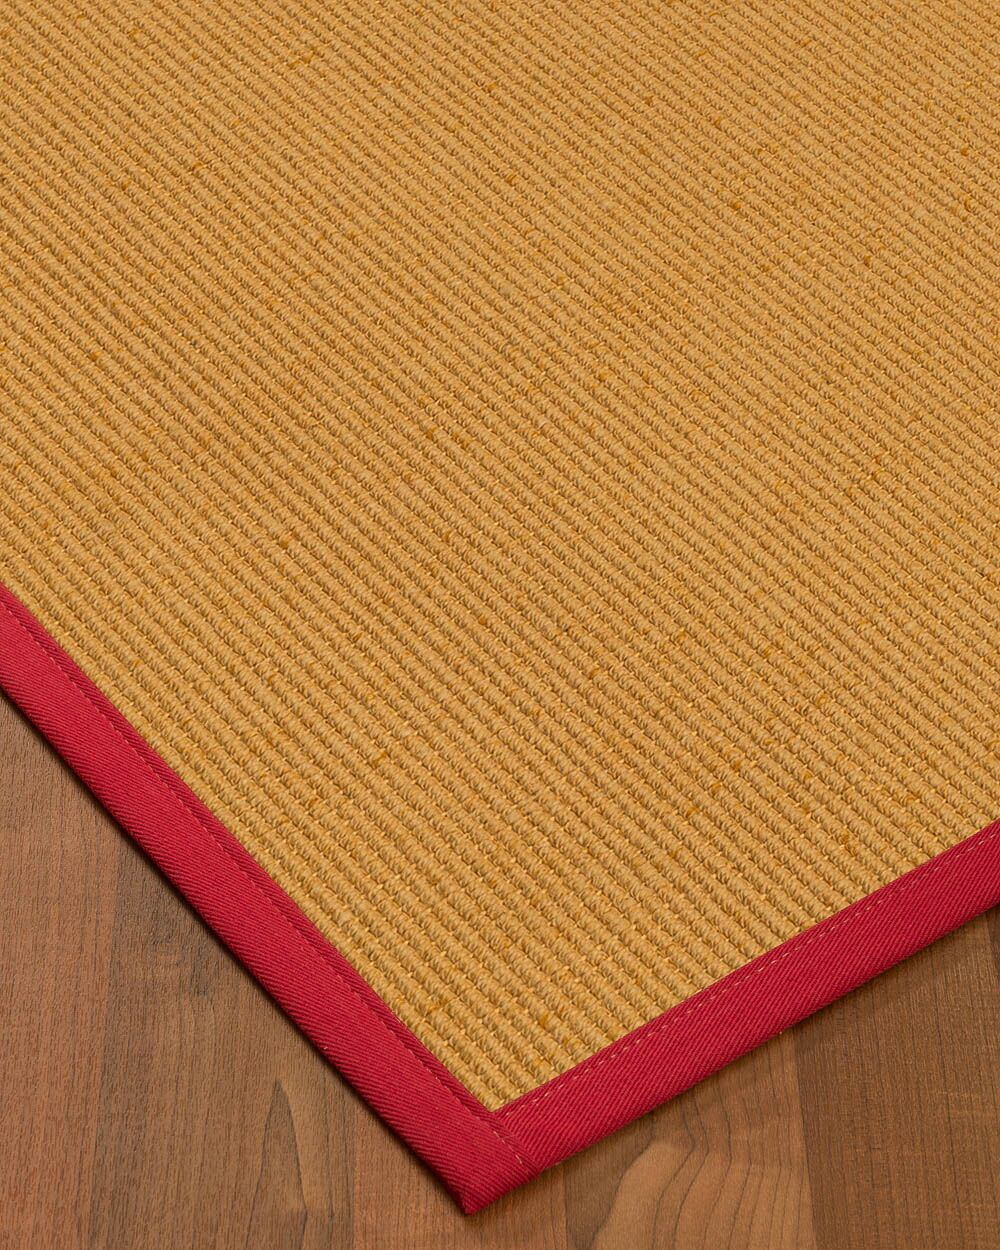 Vannatter Border Hand-Woven Beige/Red Area Rug Rug Size: Rectangle 4' x 6', Rug Pad Included: Yes